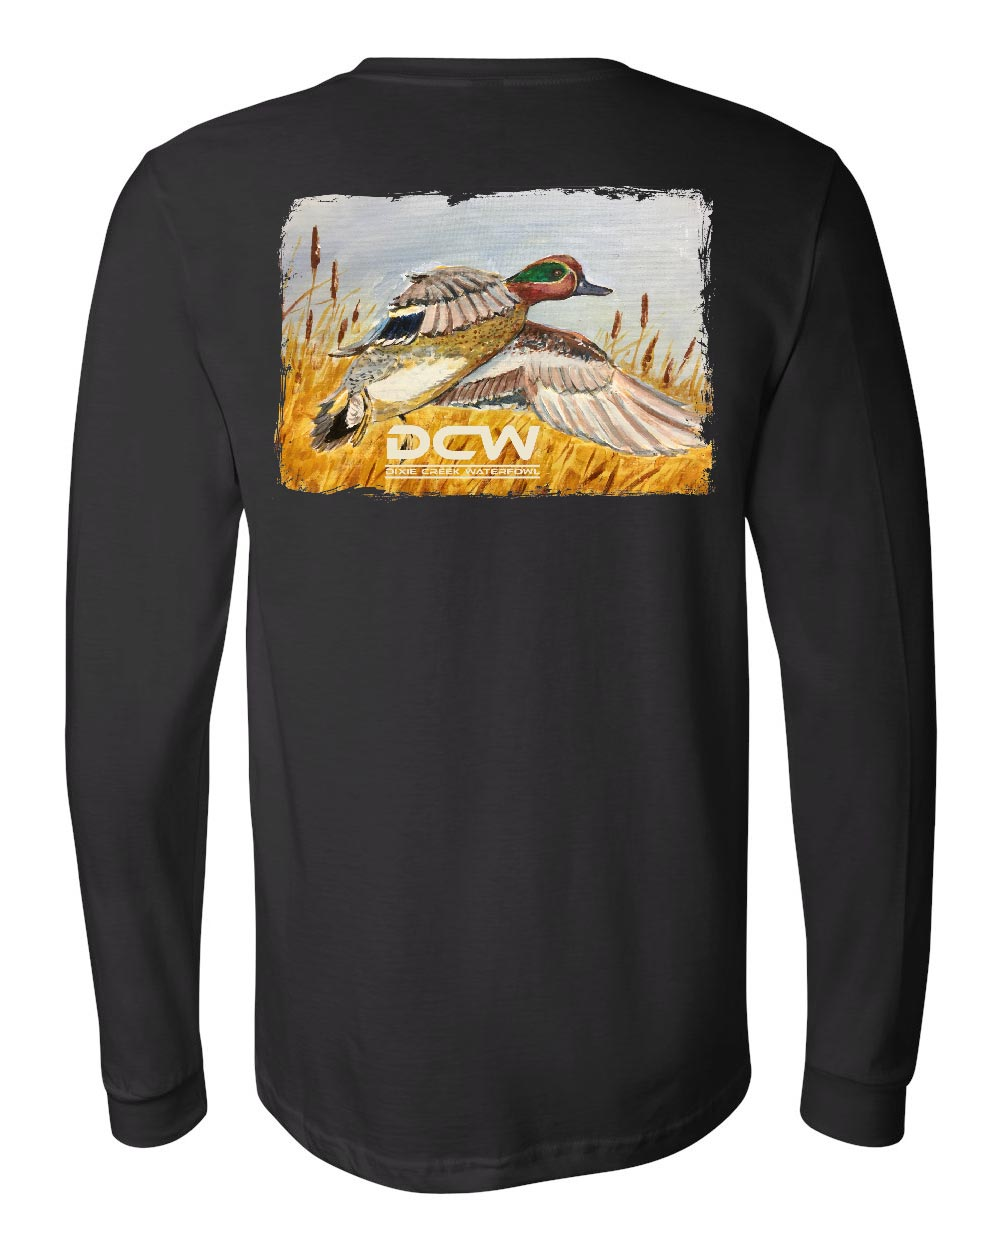 Green Wing Express - Black Long Sleeve